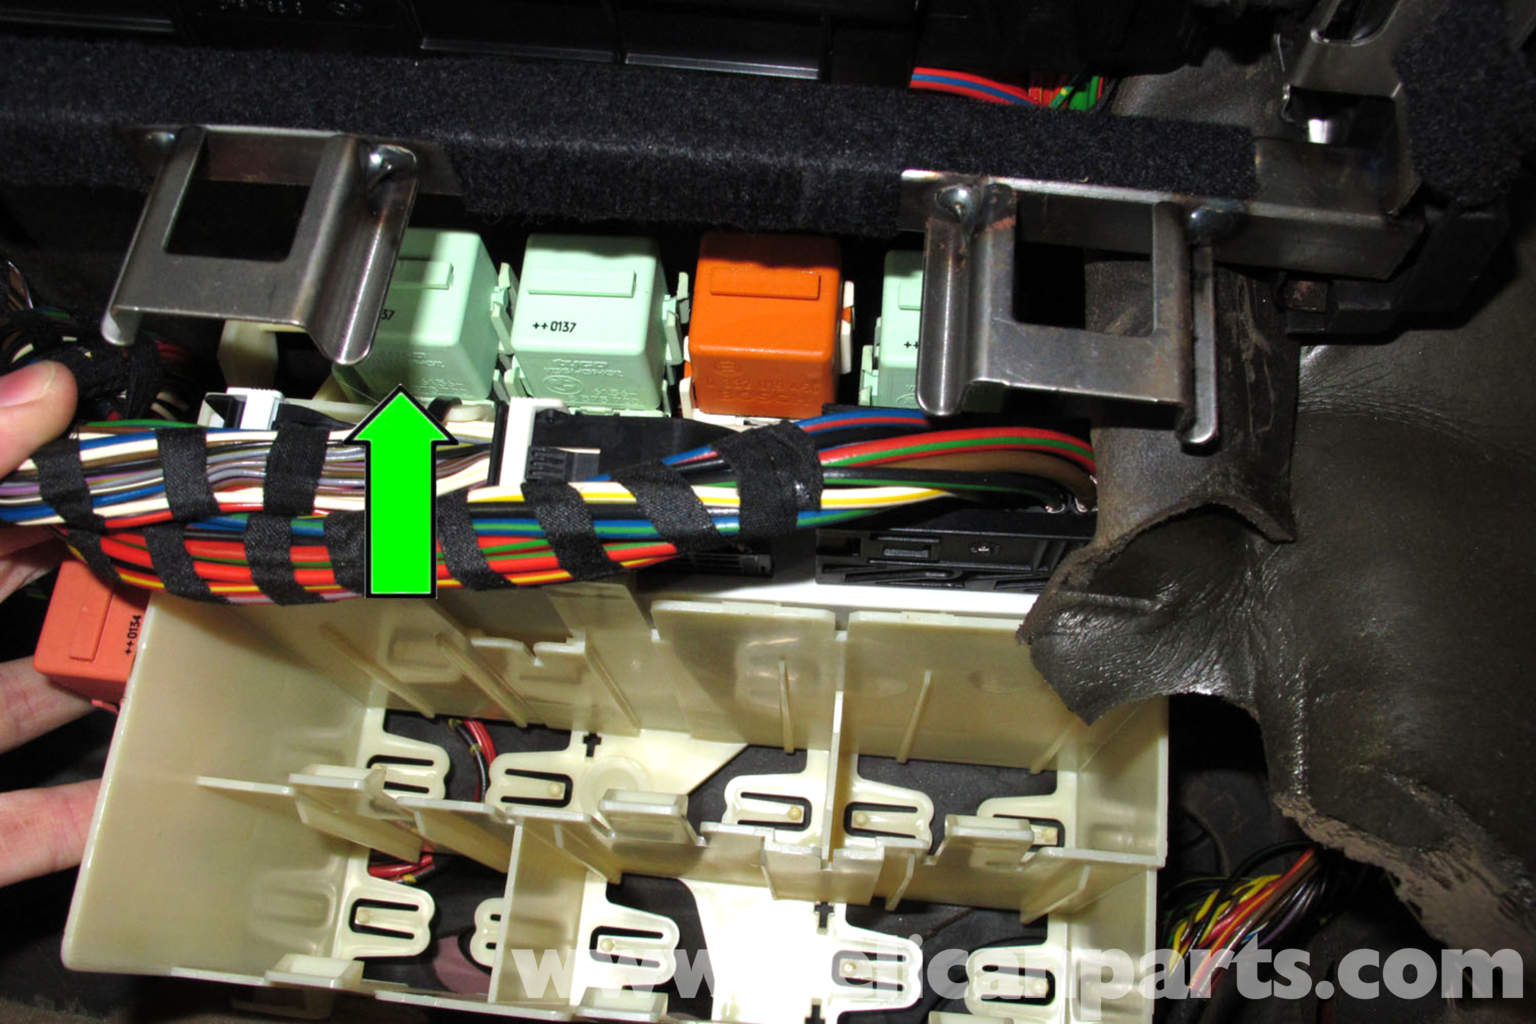 2002 Bmw 330i Fuse Diagram Wiring Will Be A Thing Box E46 Fuel Pump Testing 325i 2001 2005 330xi